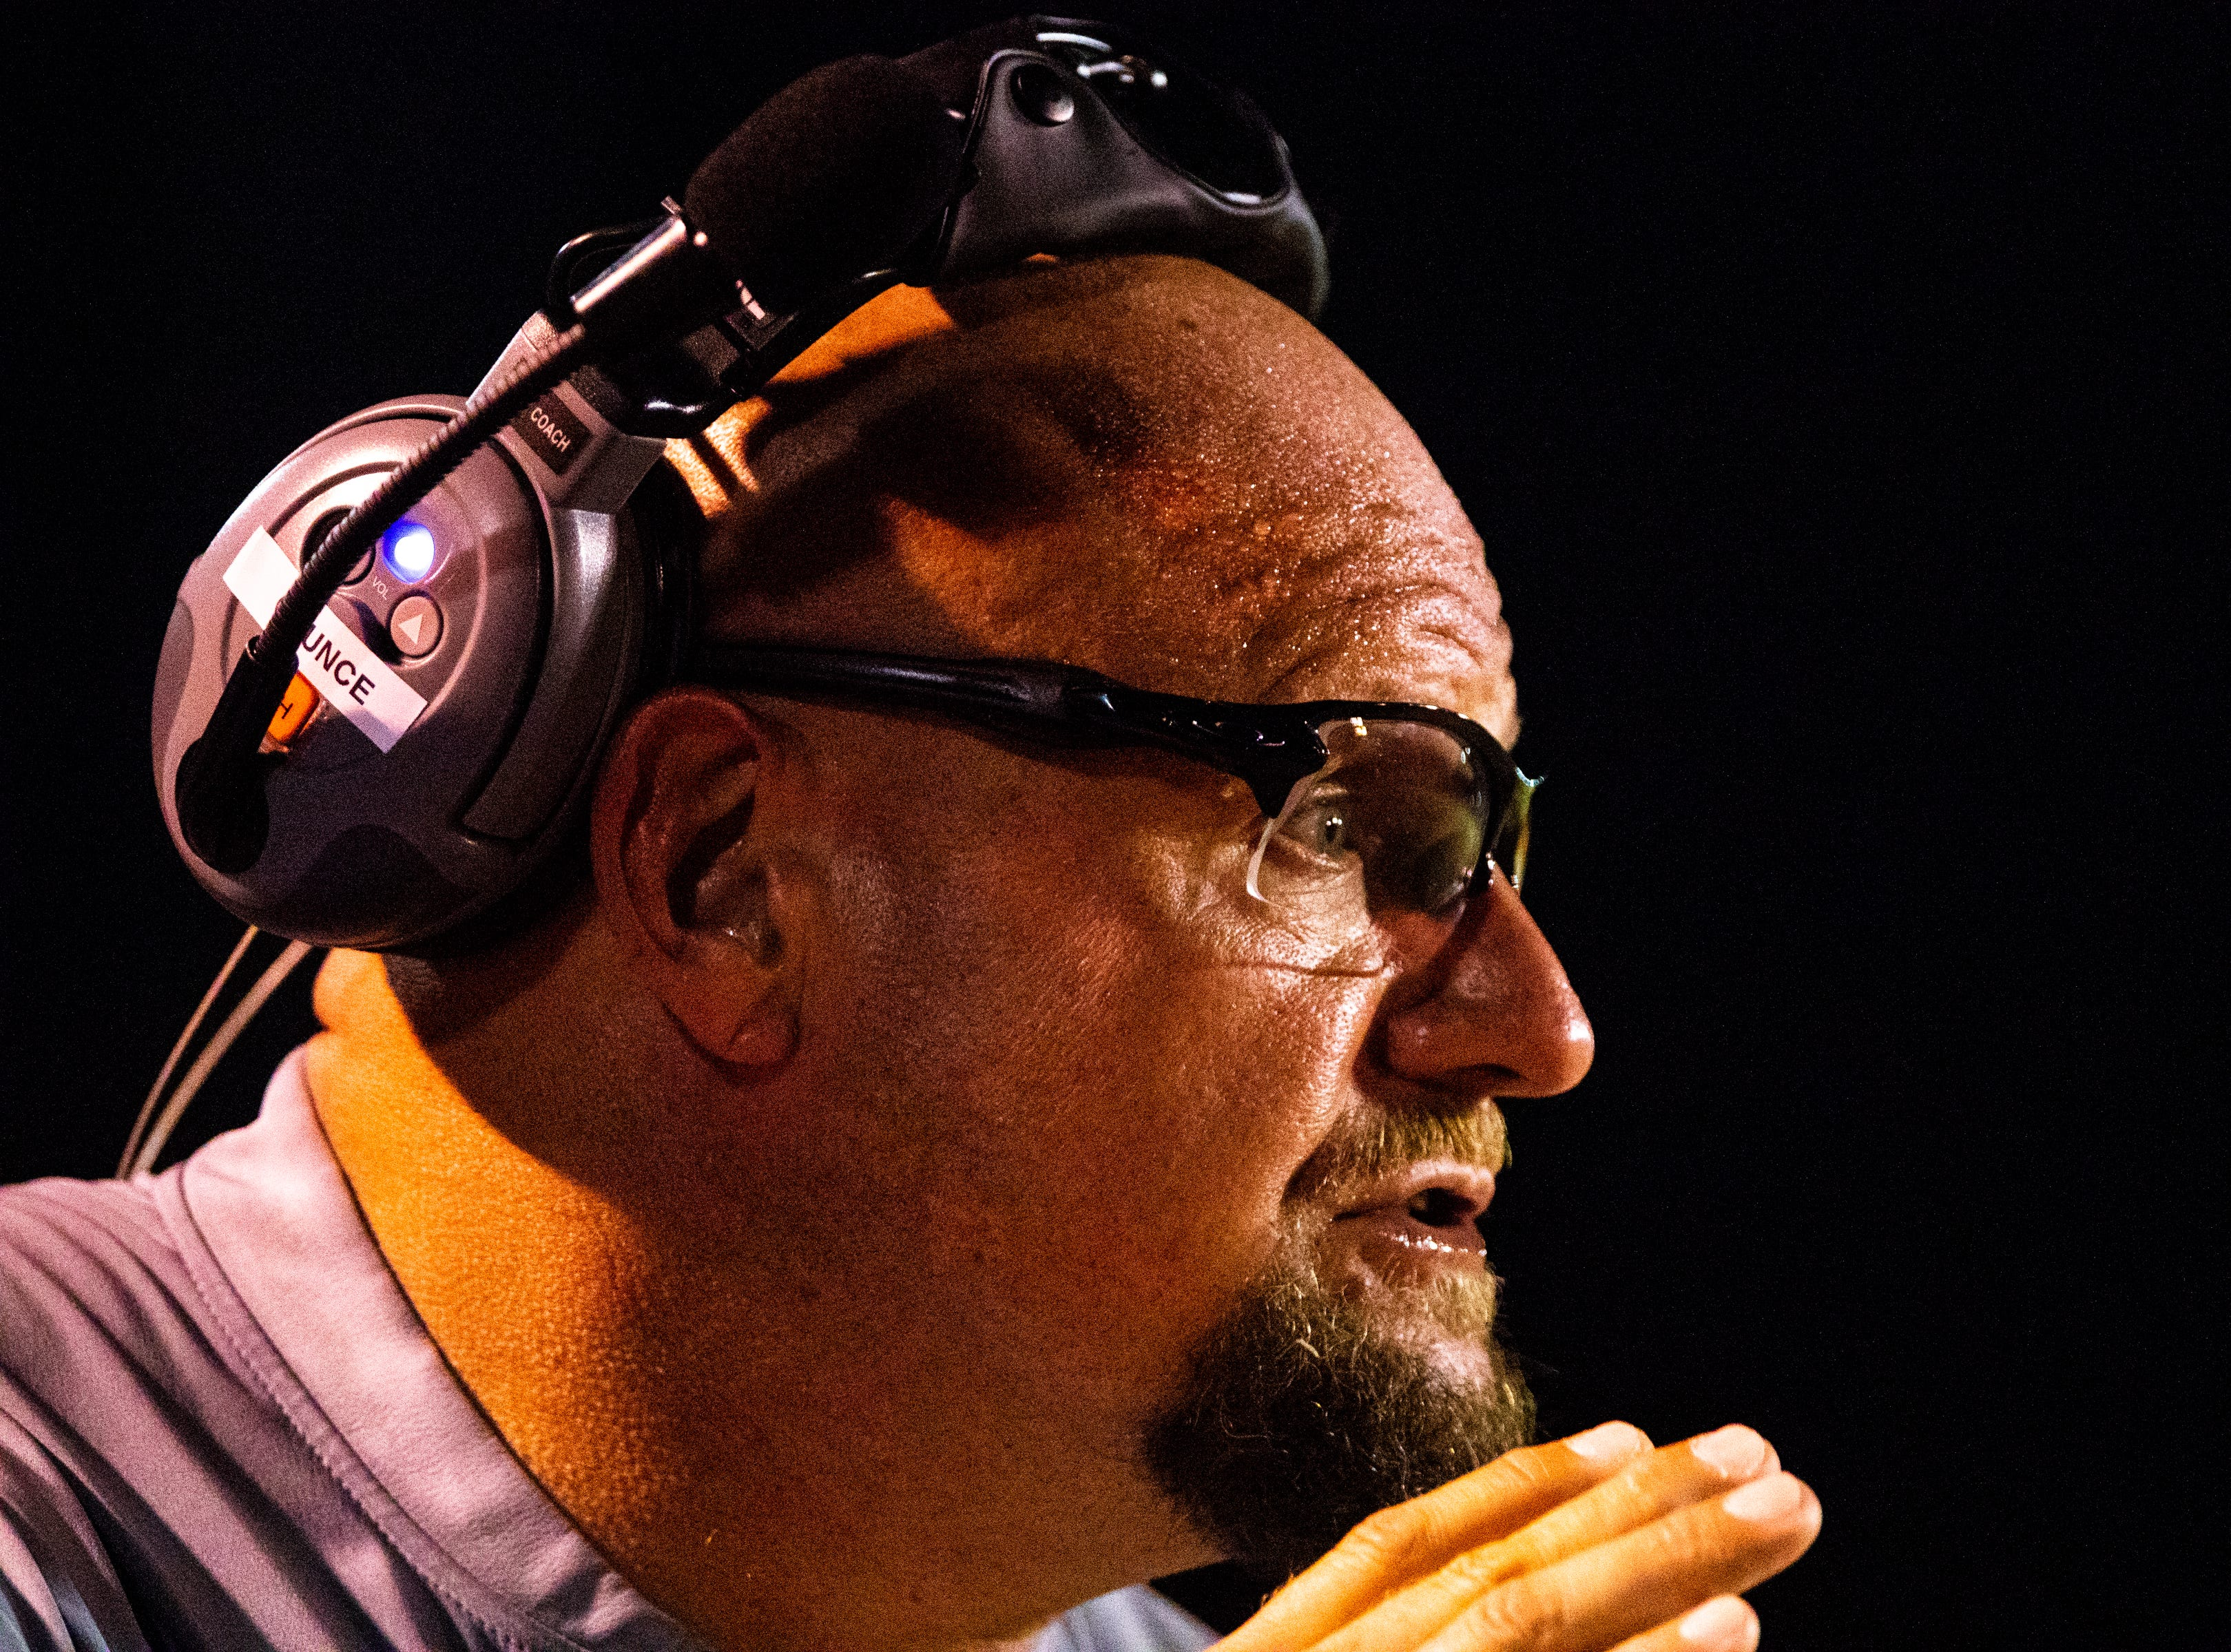 Henry County head coach James Counce Jr. watches his team during the second half at Henry County Friday, Sept. 14, 2018, in Paris, Tenn.